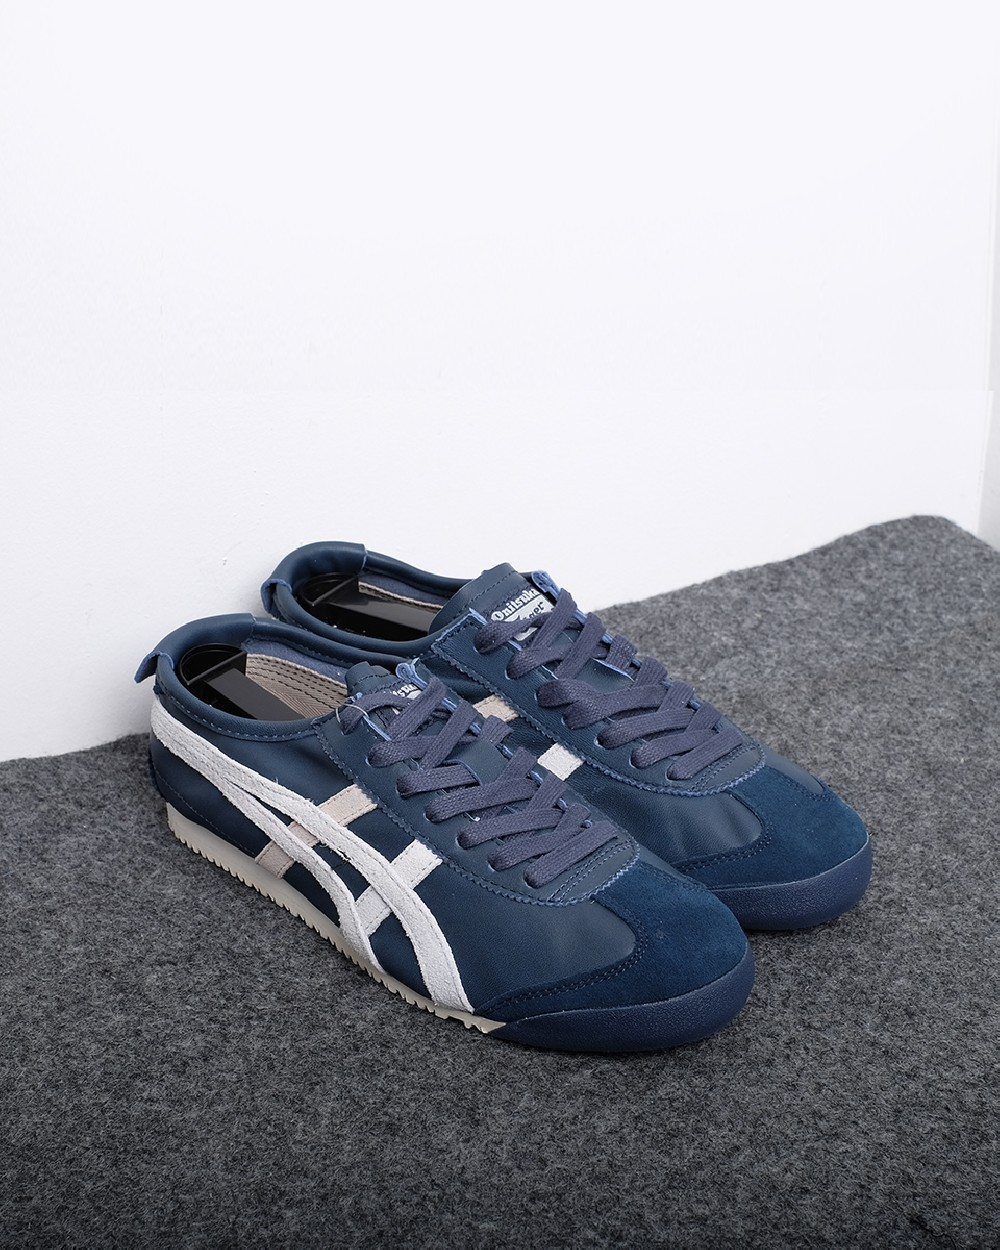 huge selection of 978f4 864fc Onitsuka Tiger Mexico 66 - Navy White - 13259